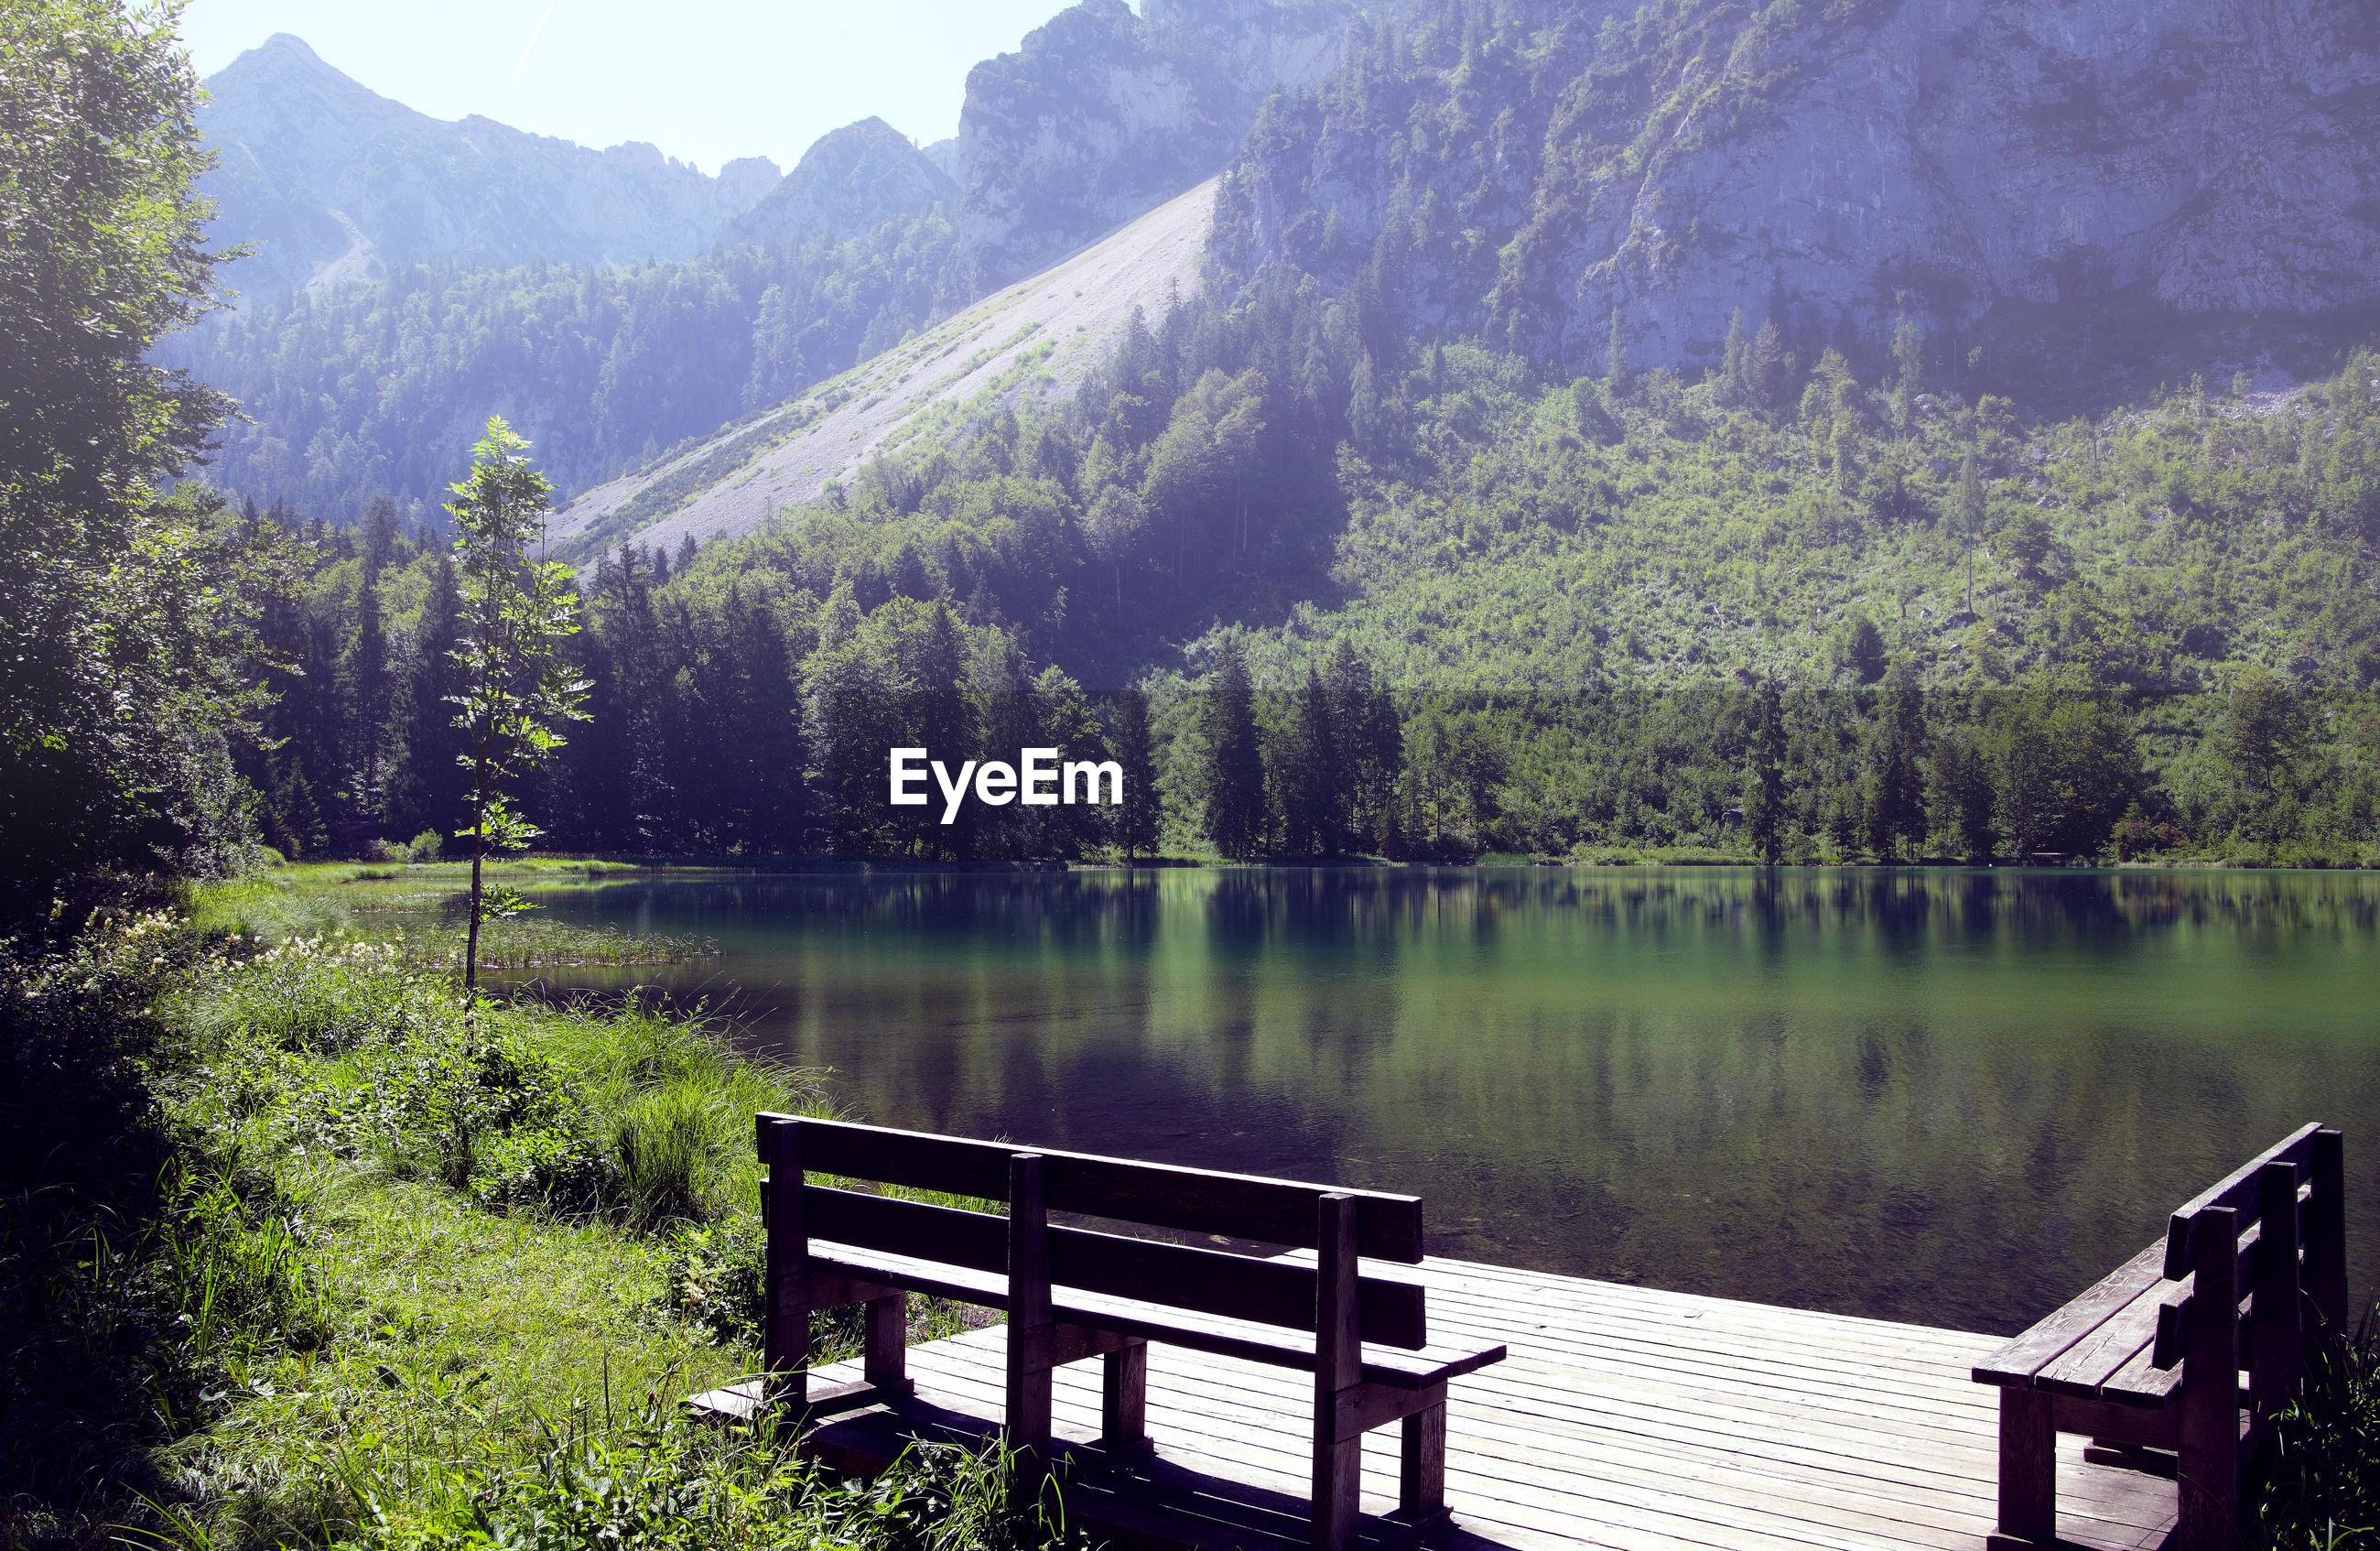 BENCH BY TREES IN LAKE AGAINST MOUNTAIN